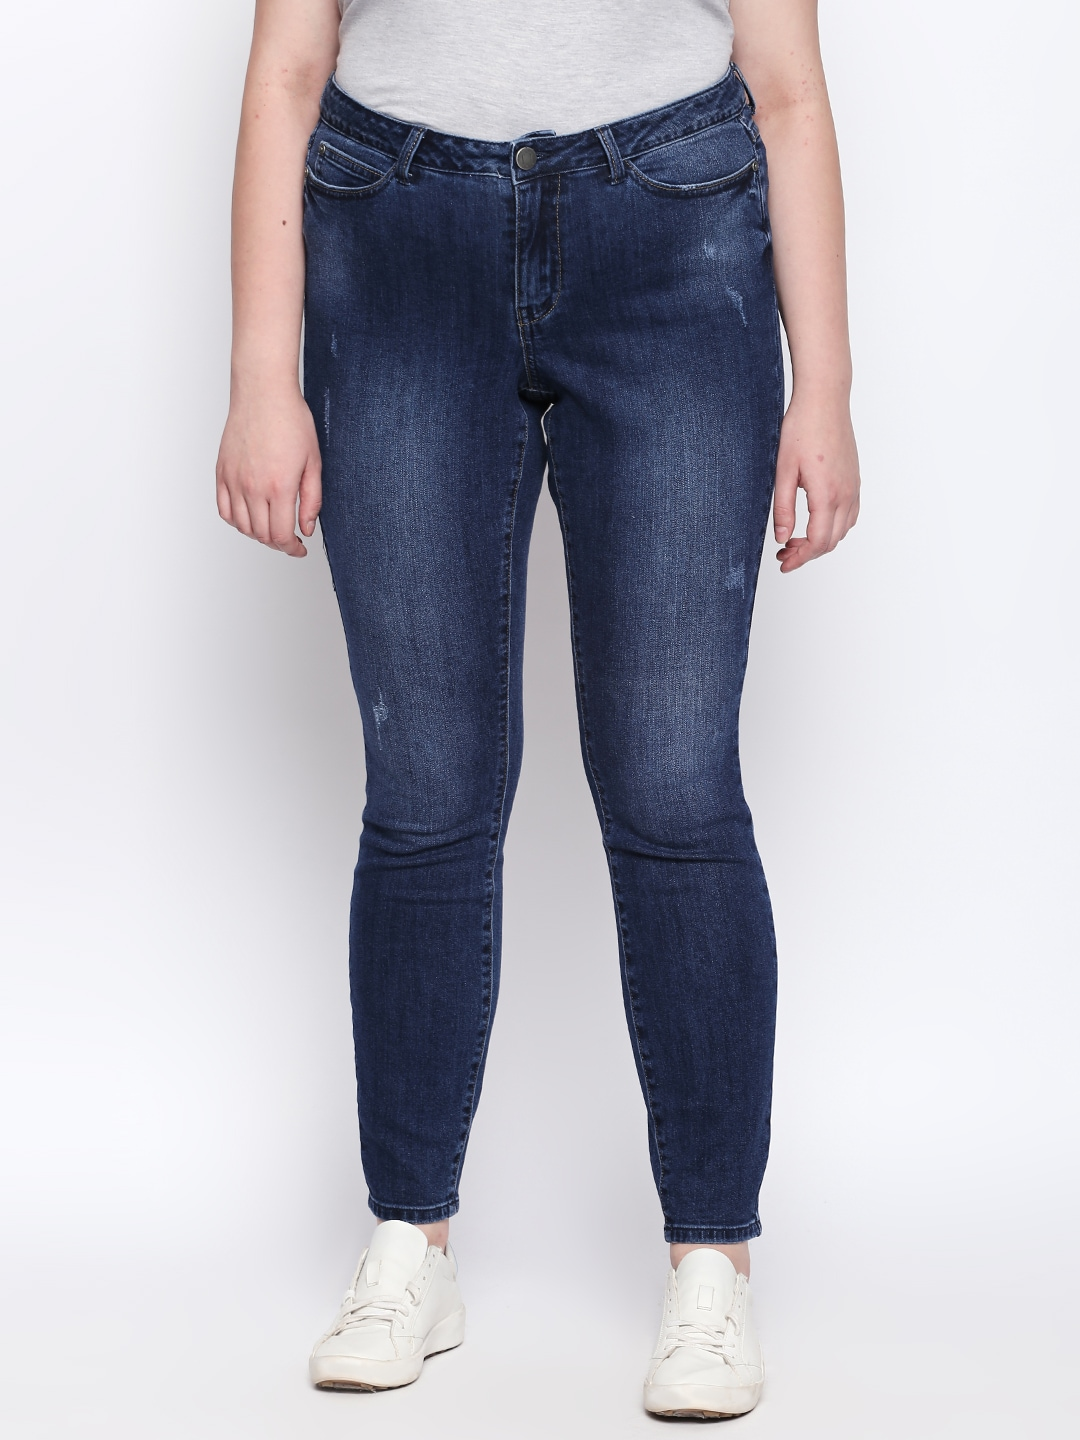 d4398866e77 Women Jeans and Jeggings - Buy Jeans and Jeggings for Women Online in India  at Best Price